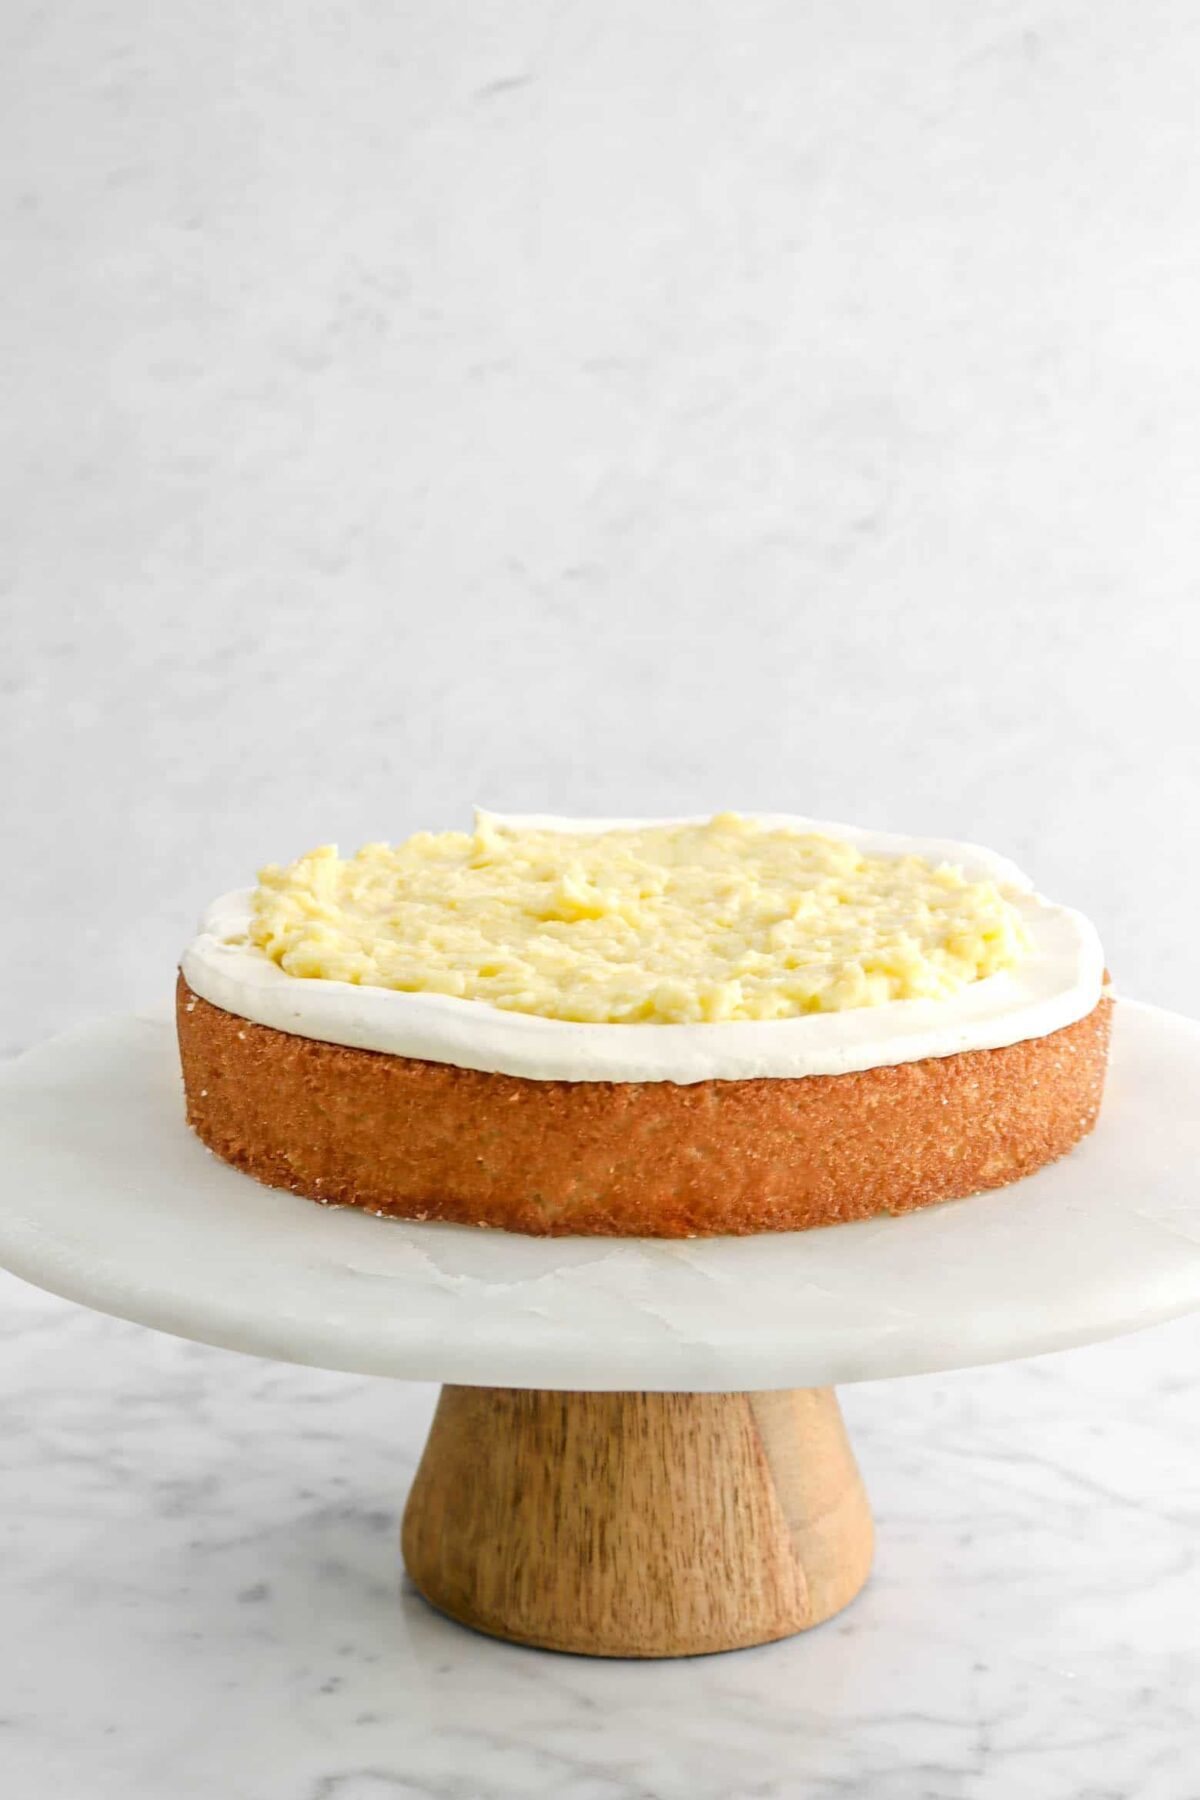 coconut pastry cream added in the middle of the cake layer